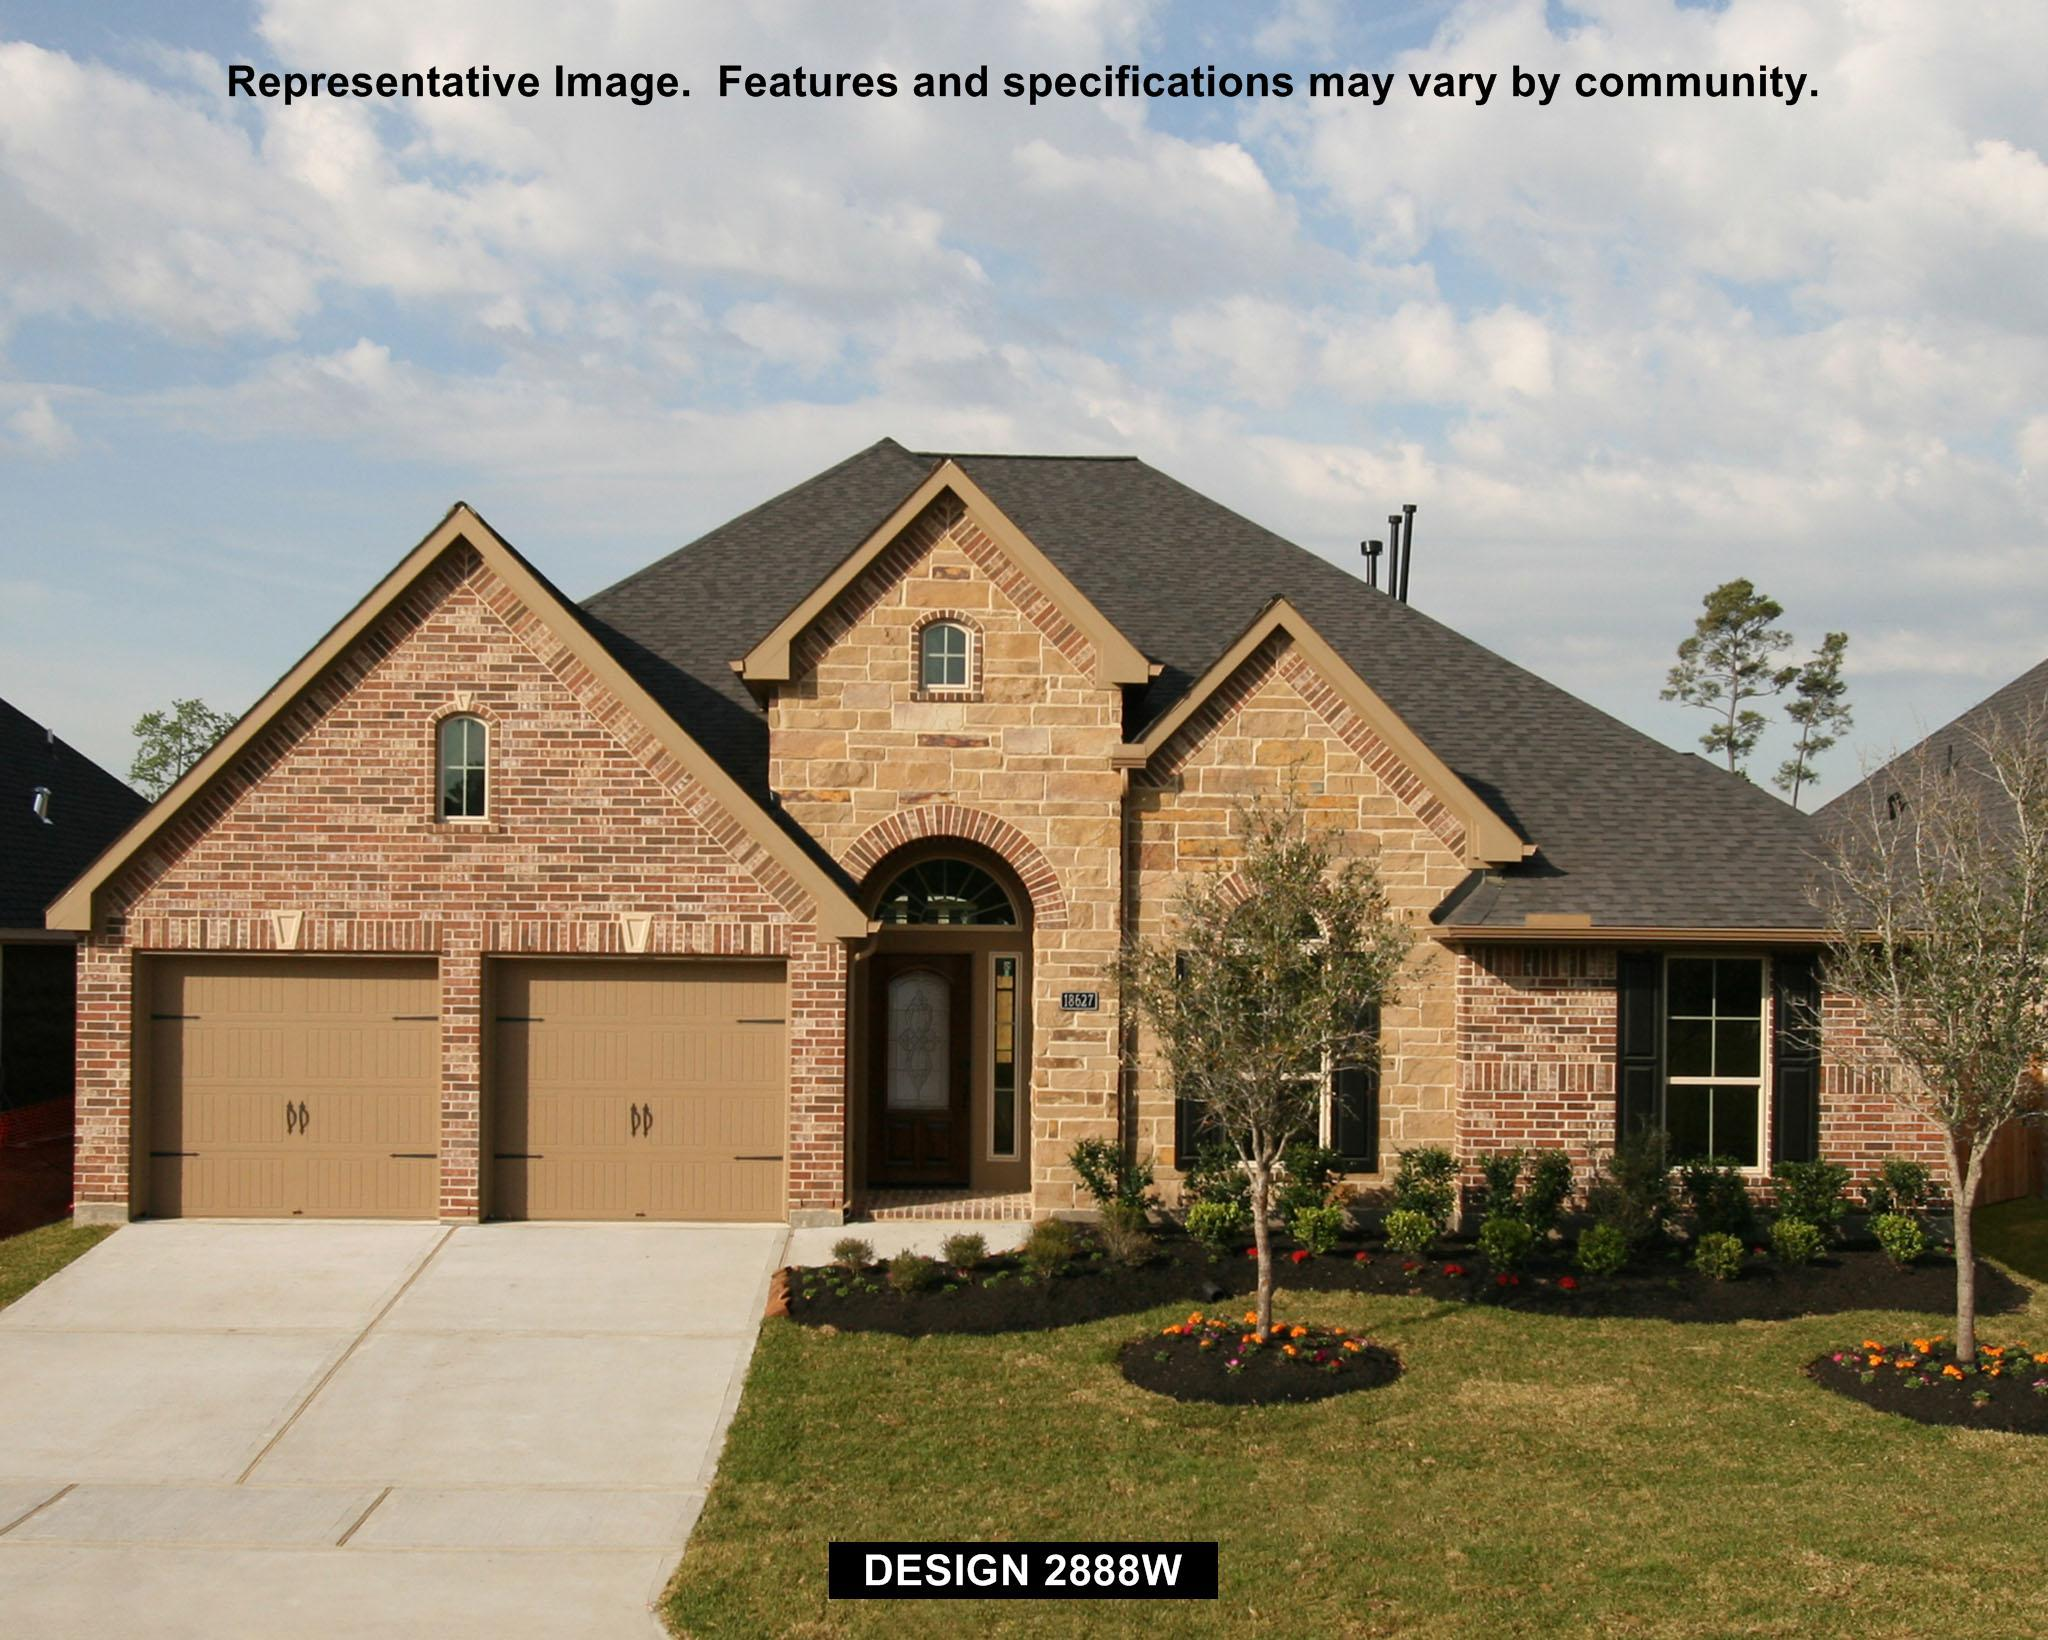 2888W - Firethorne: Firethorne 60': Katy, TX - Perry Homes